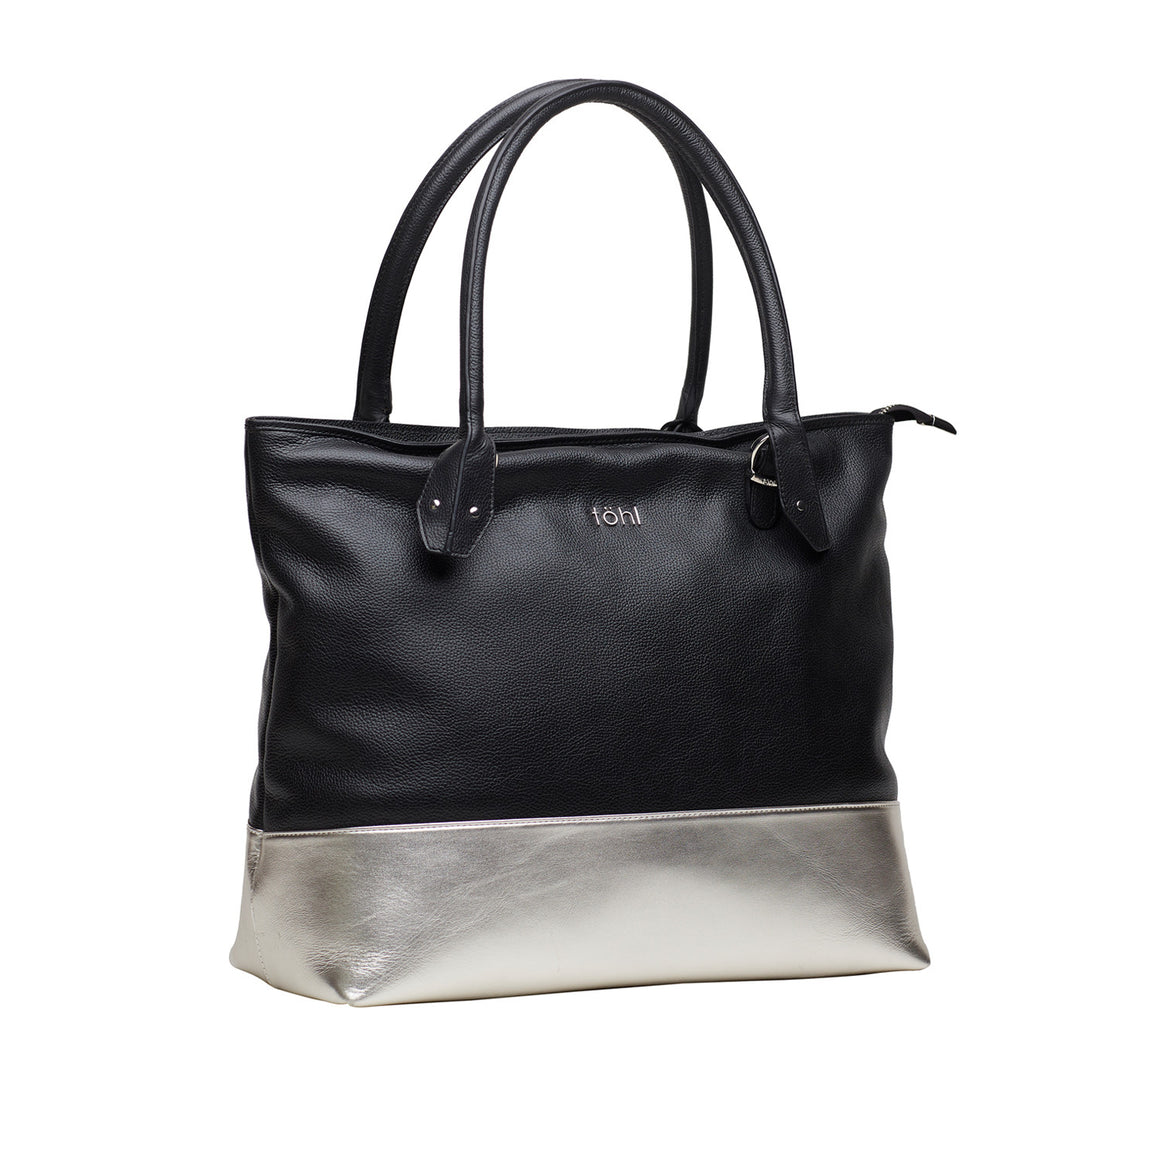 TT 0003 - TOHL CAYO WOMEN'S TOTE BAG - CHARCOAL BLACK